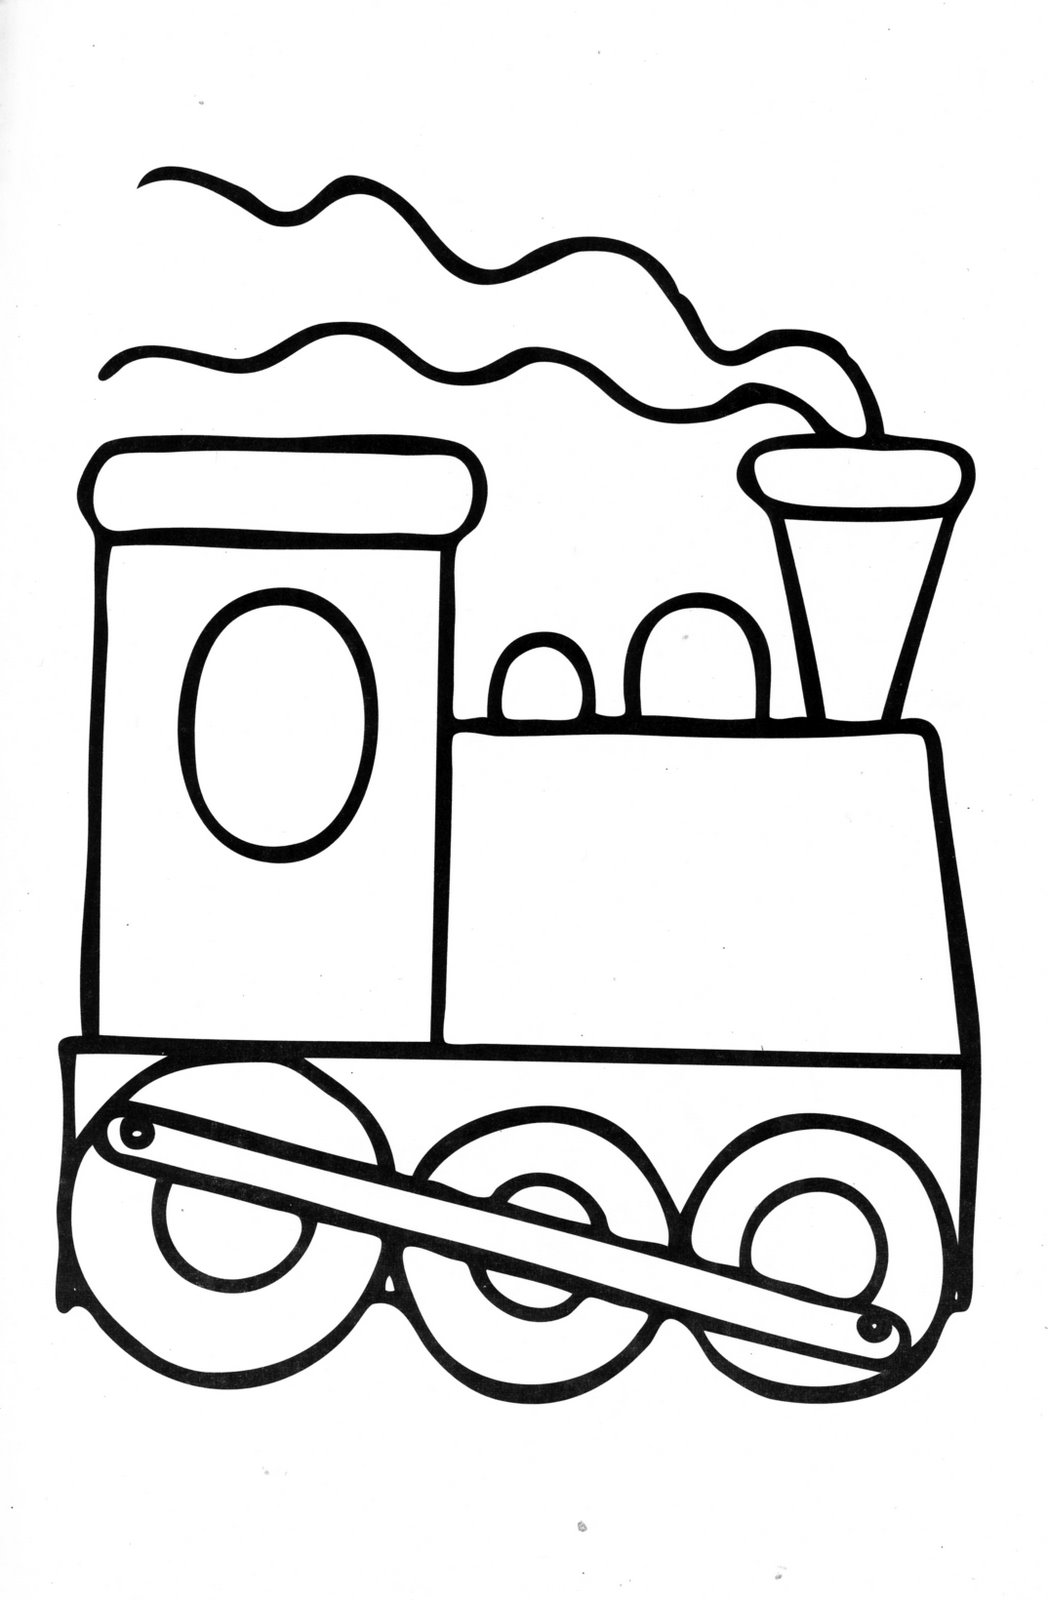 Train coloring pages for toddlers - Childrens Day Coloring Pages